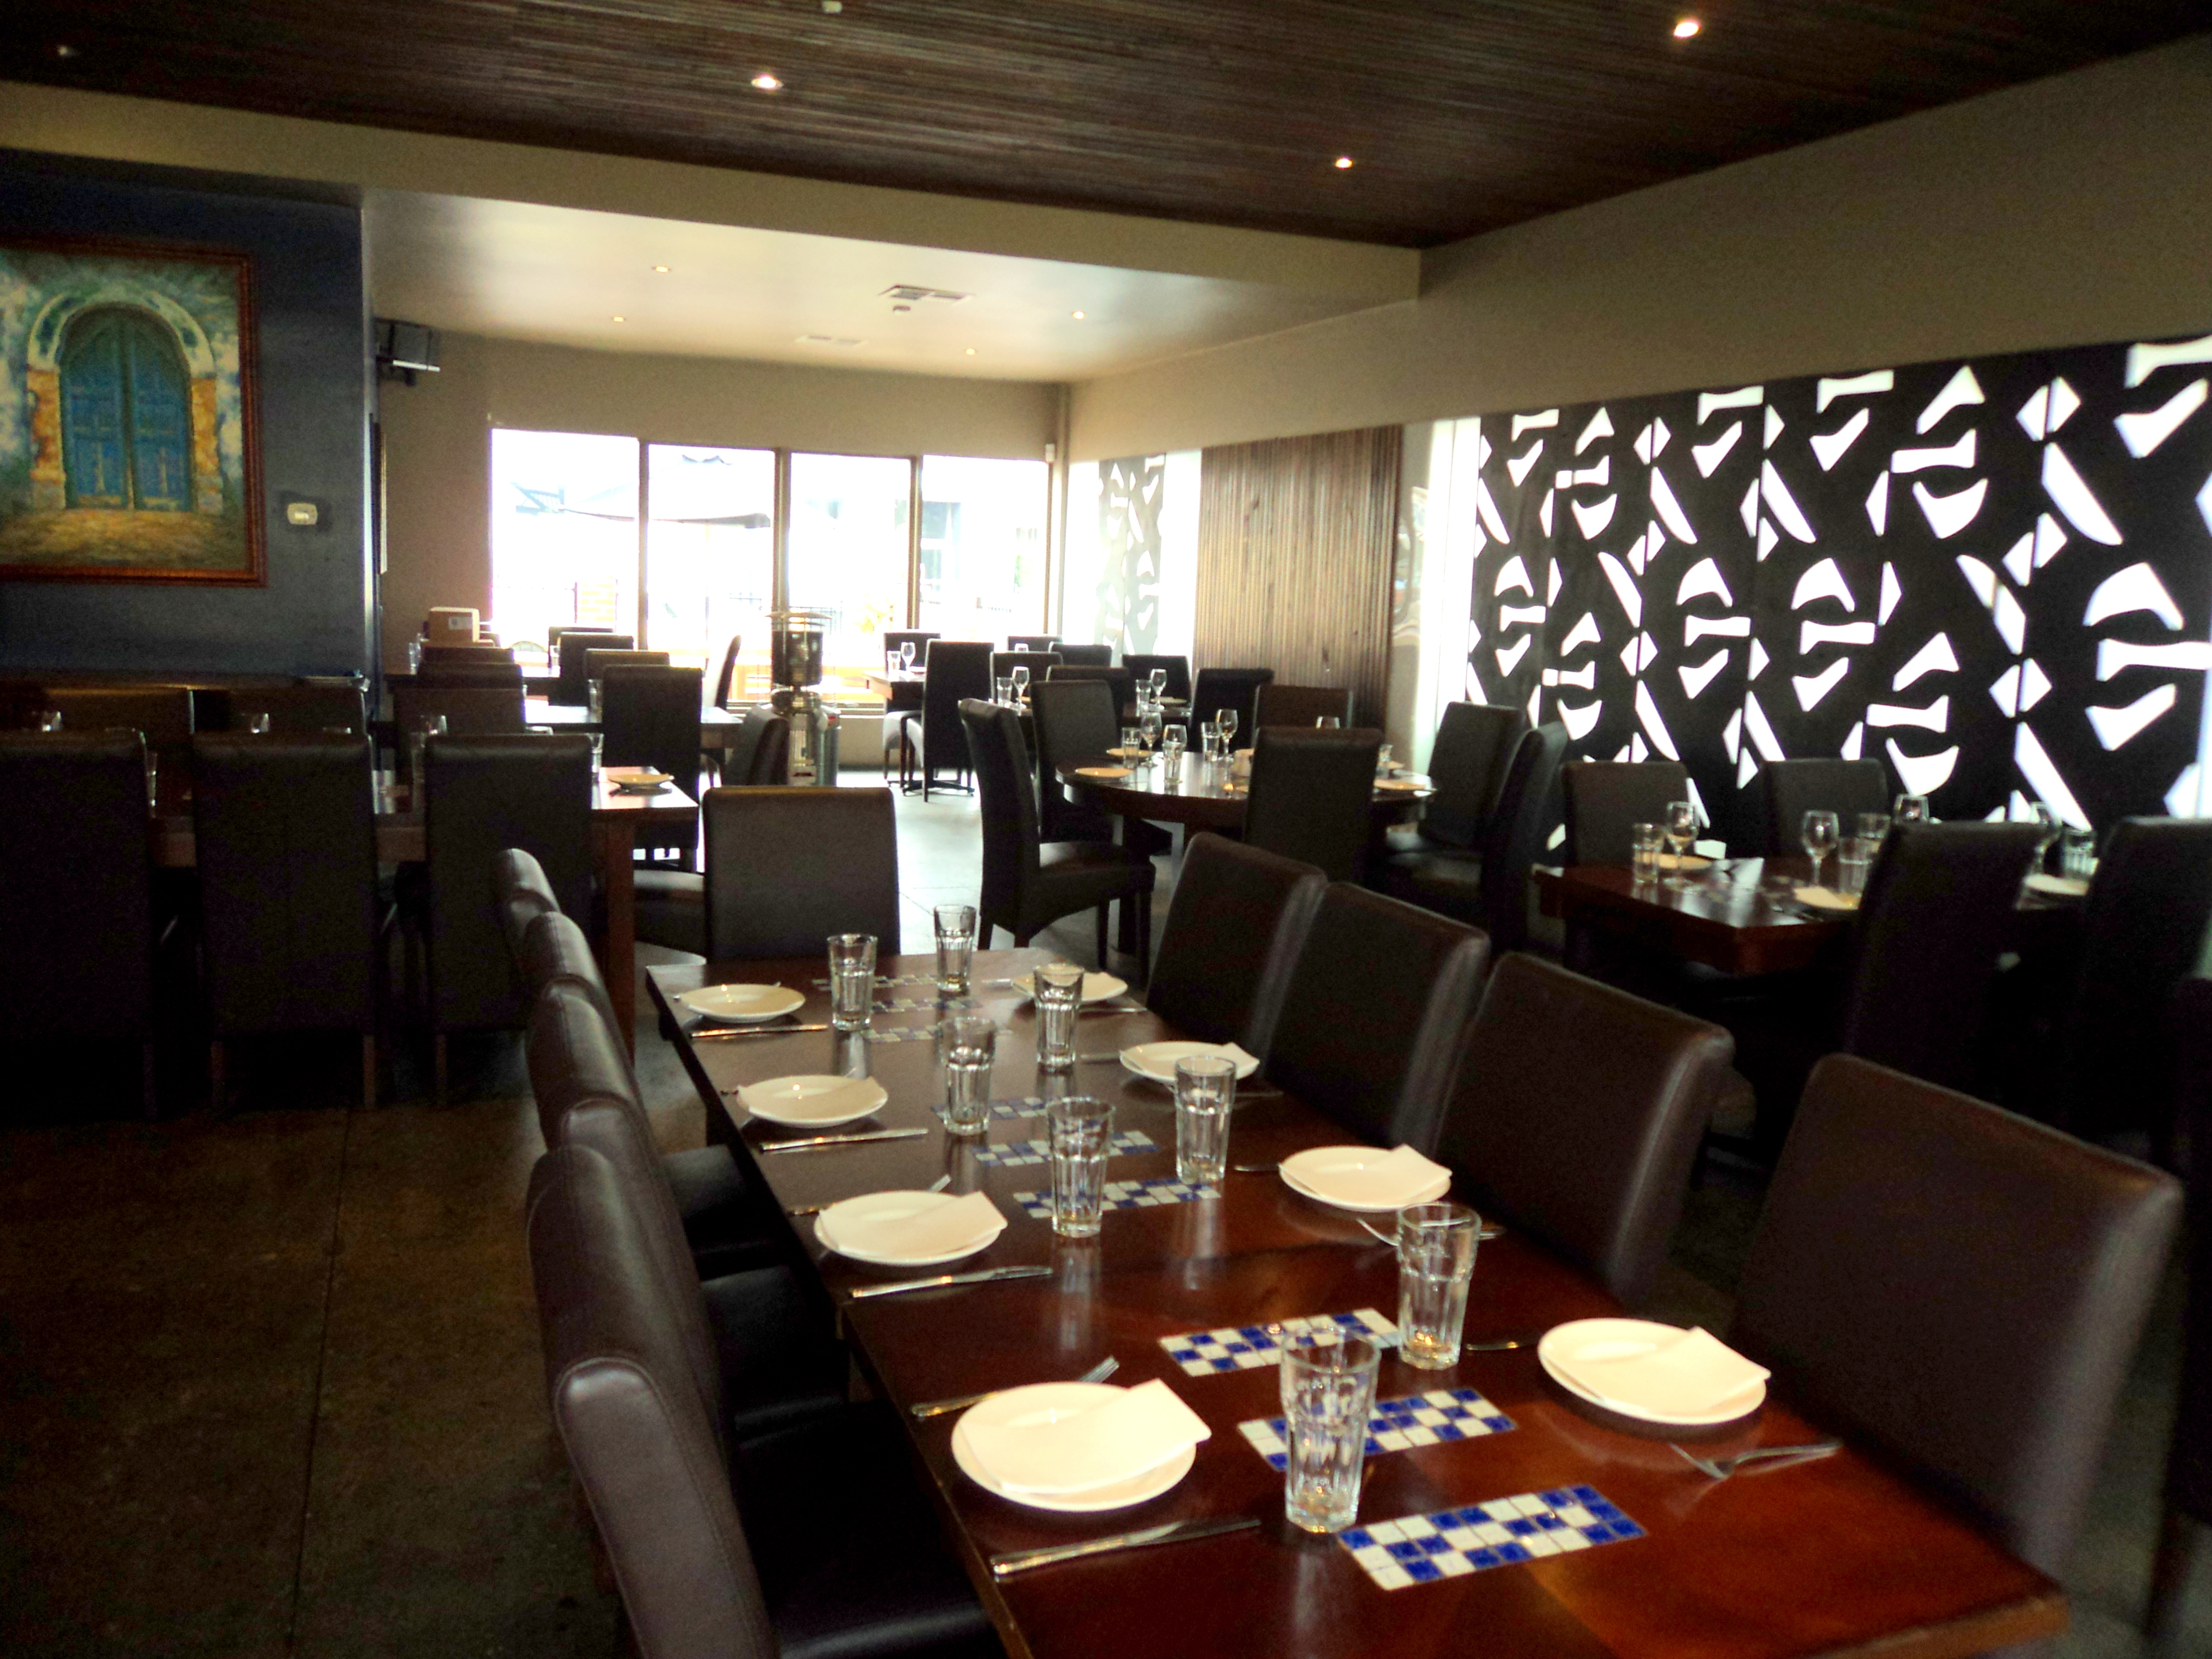 Mesa greek cuisine melbourne restaurants with private dining area melbourne dzzzfo